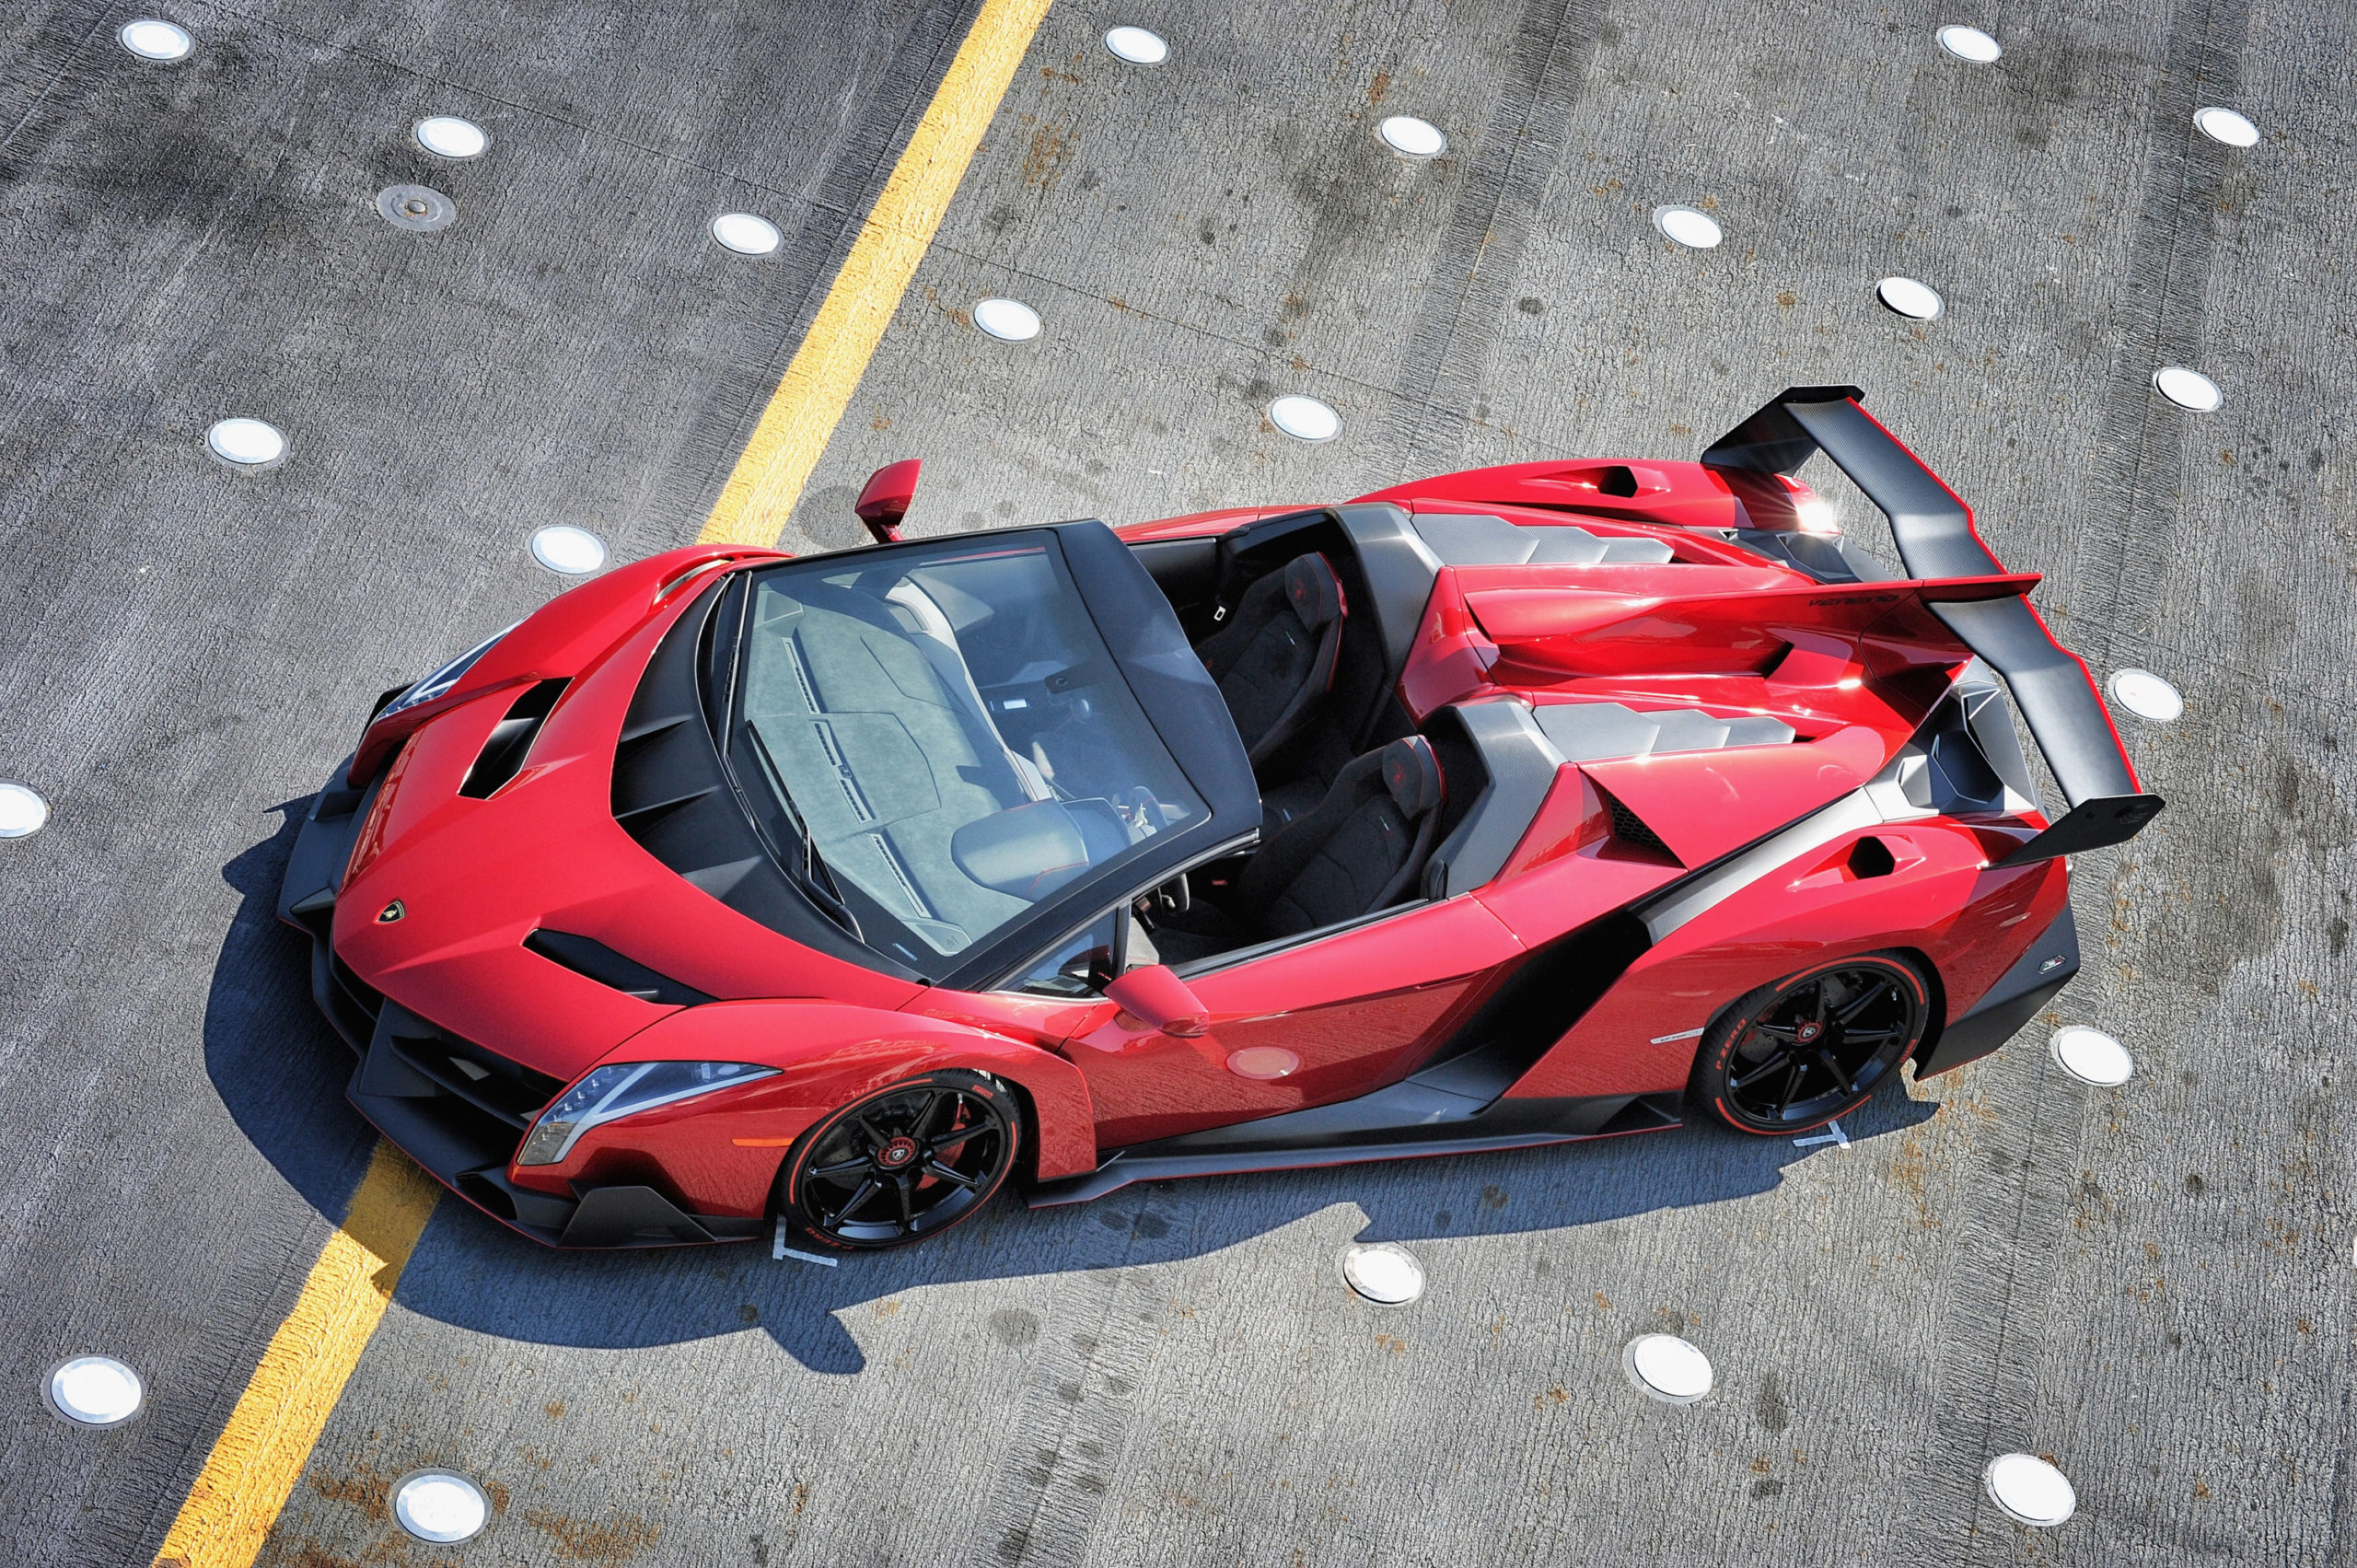 Despite having many technical and style features of a competition car, such as the large rear extractor, the Veneno is, to all intents and purposes, a car approved for road use